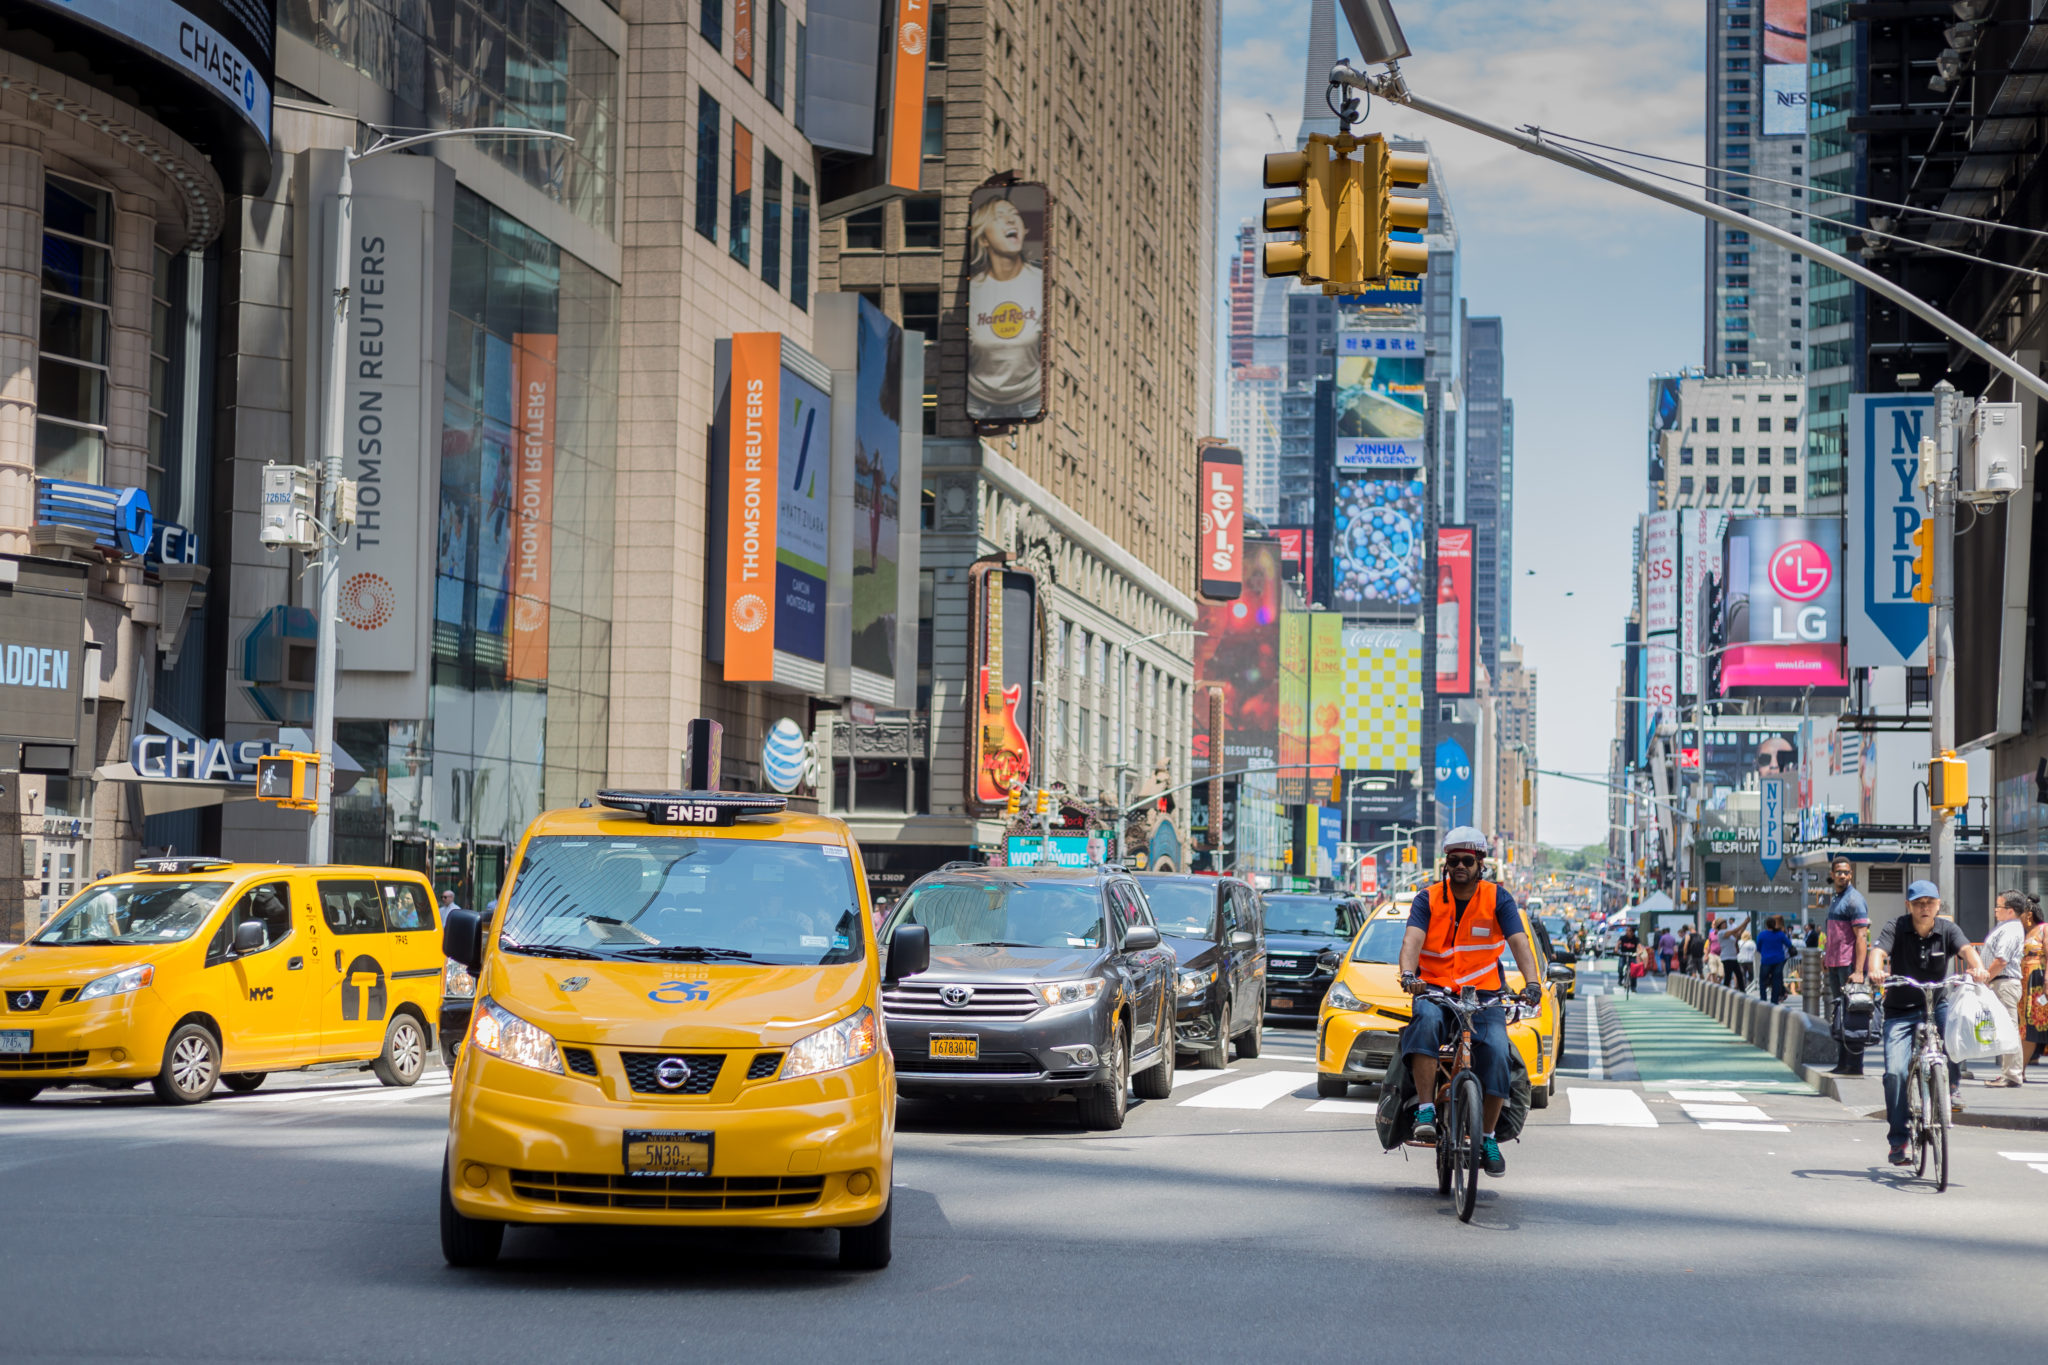 Photo of a New York street next to Time Square. People riding, walking on the sidewalk. Cars and taxis driving are about to turn right. Huge buildings with commercials promoting LG, Chase,...